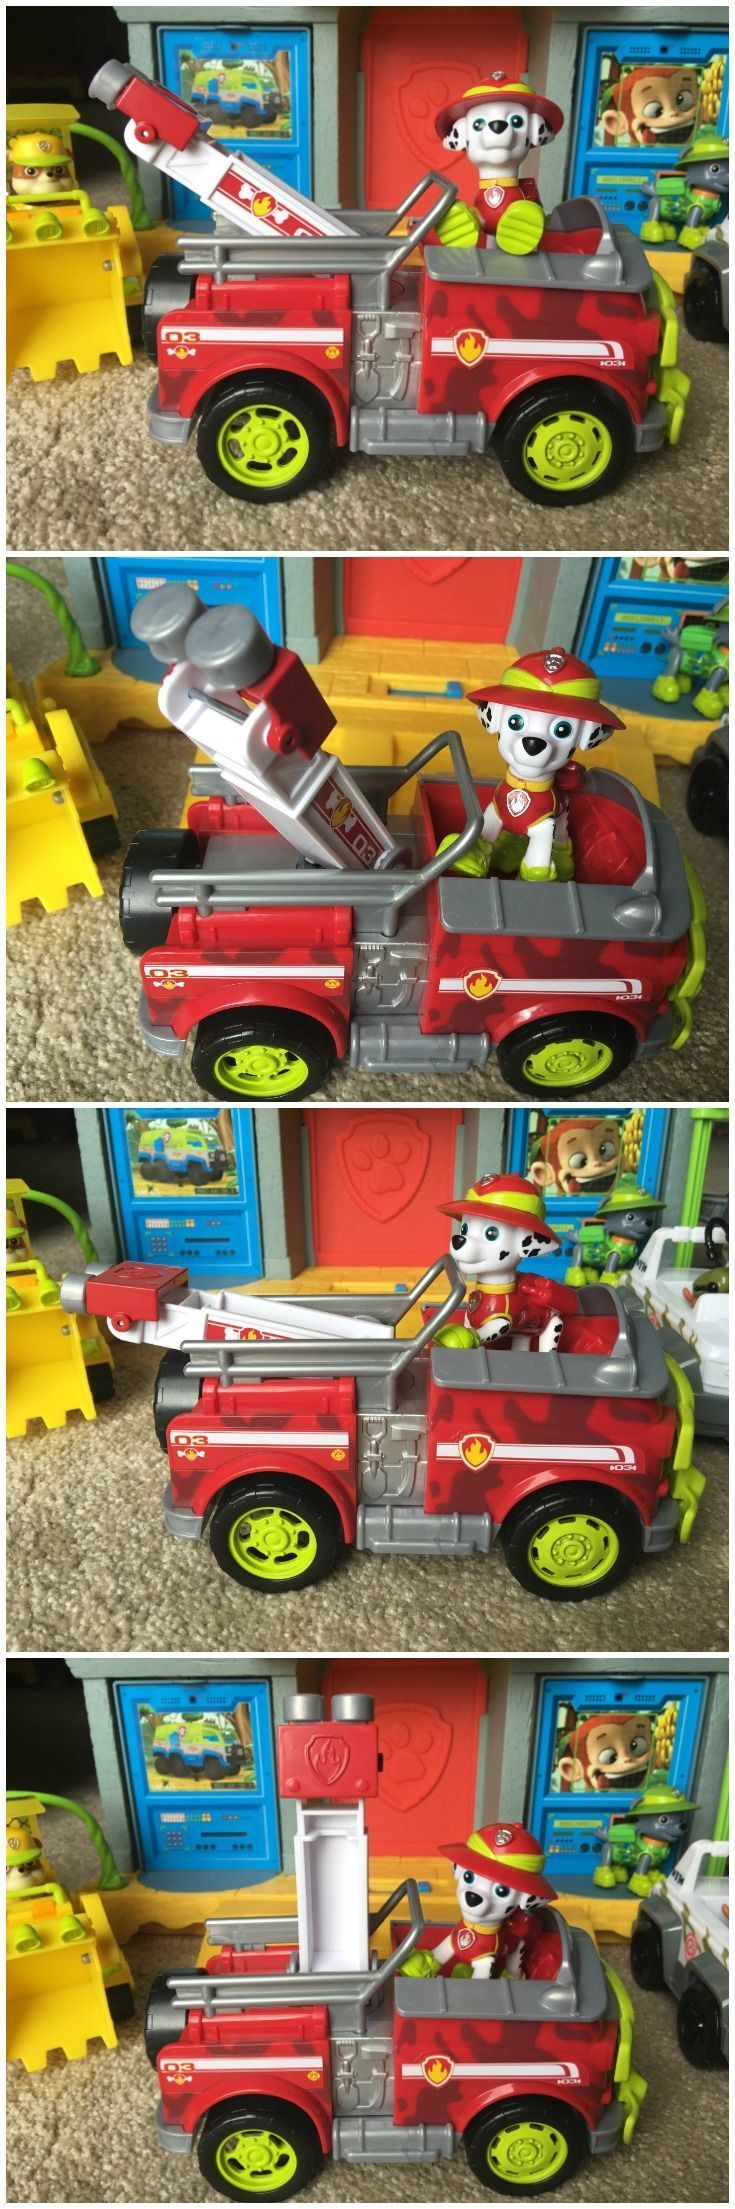 Paw Patrol Jungle Rescue Marshall Toy